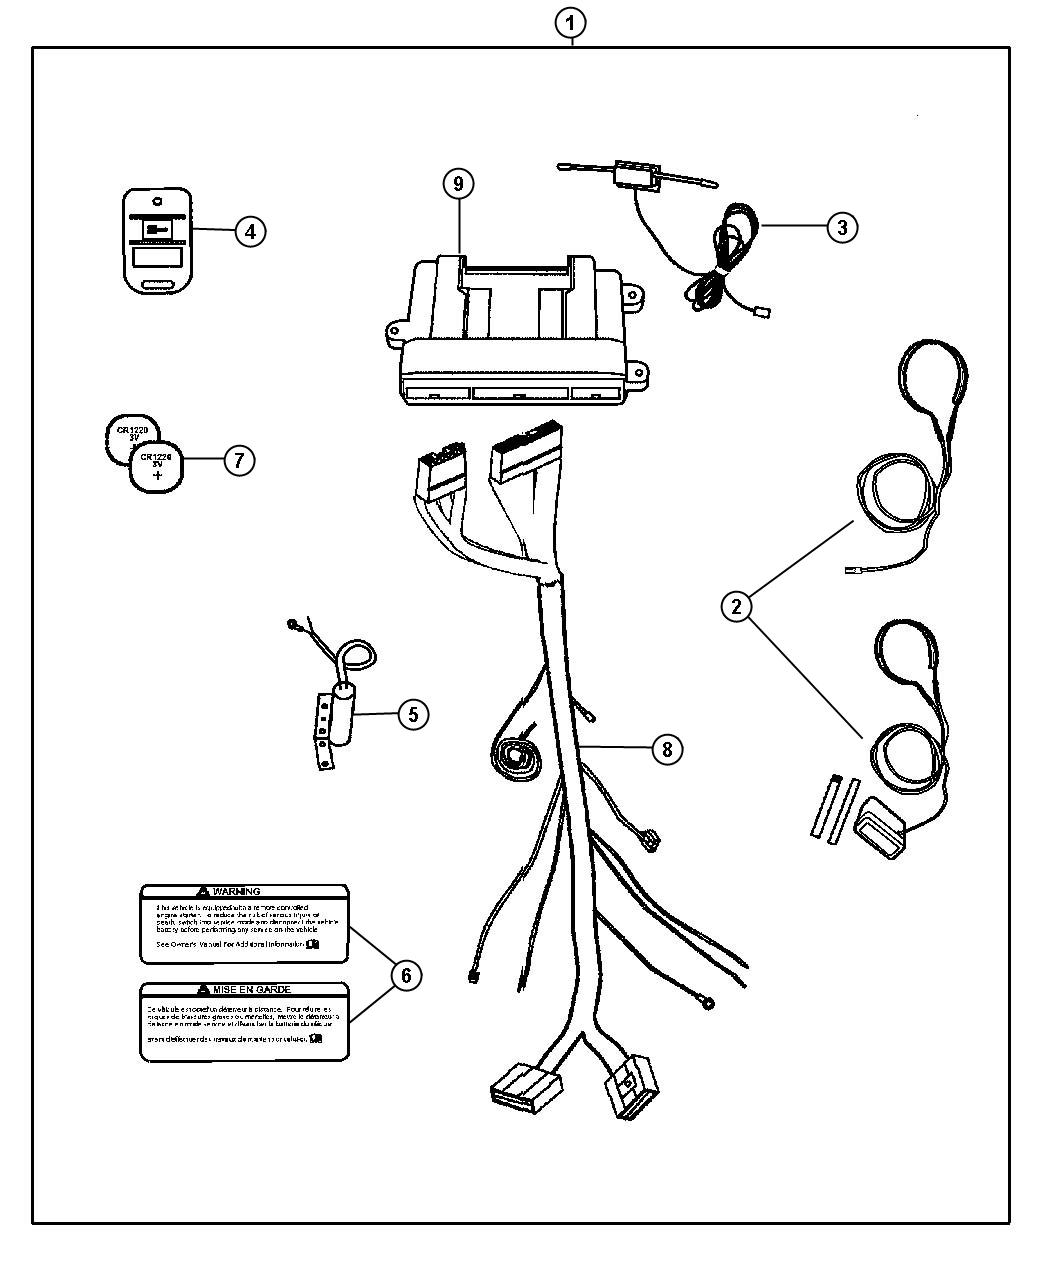 Remote Start Wiring Diagrams 2005 Dodge Ram, Remote, Free